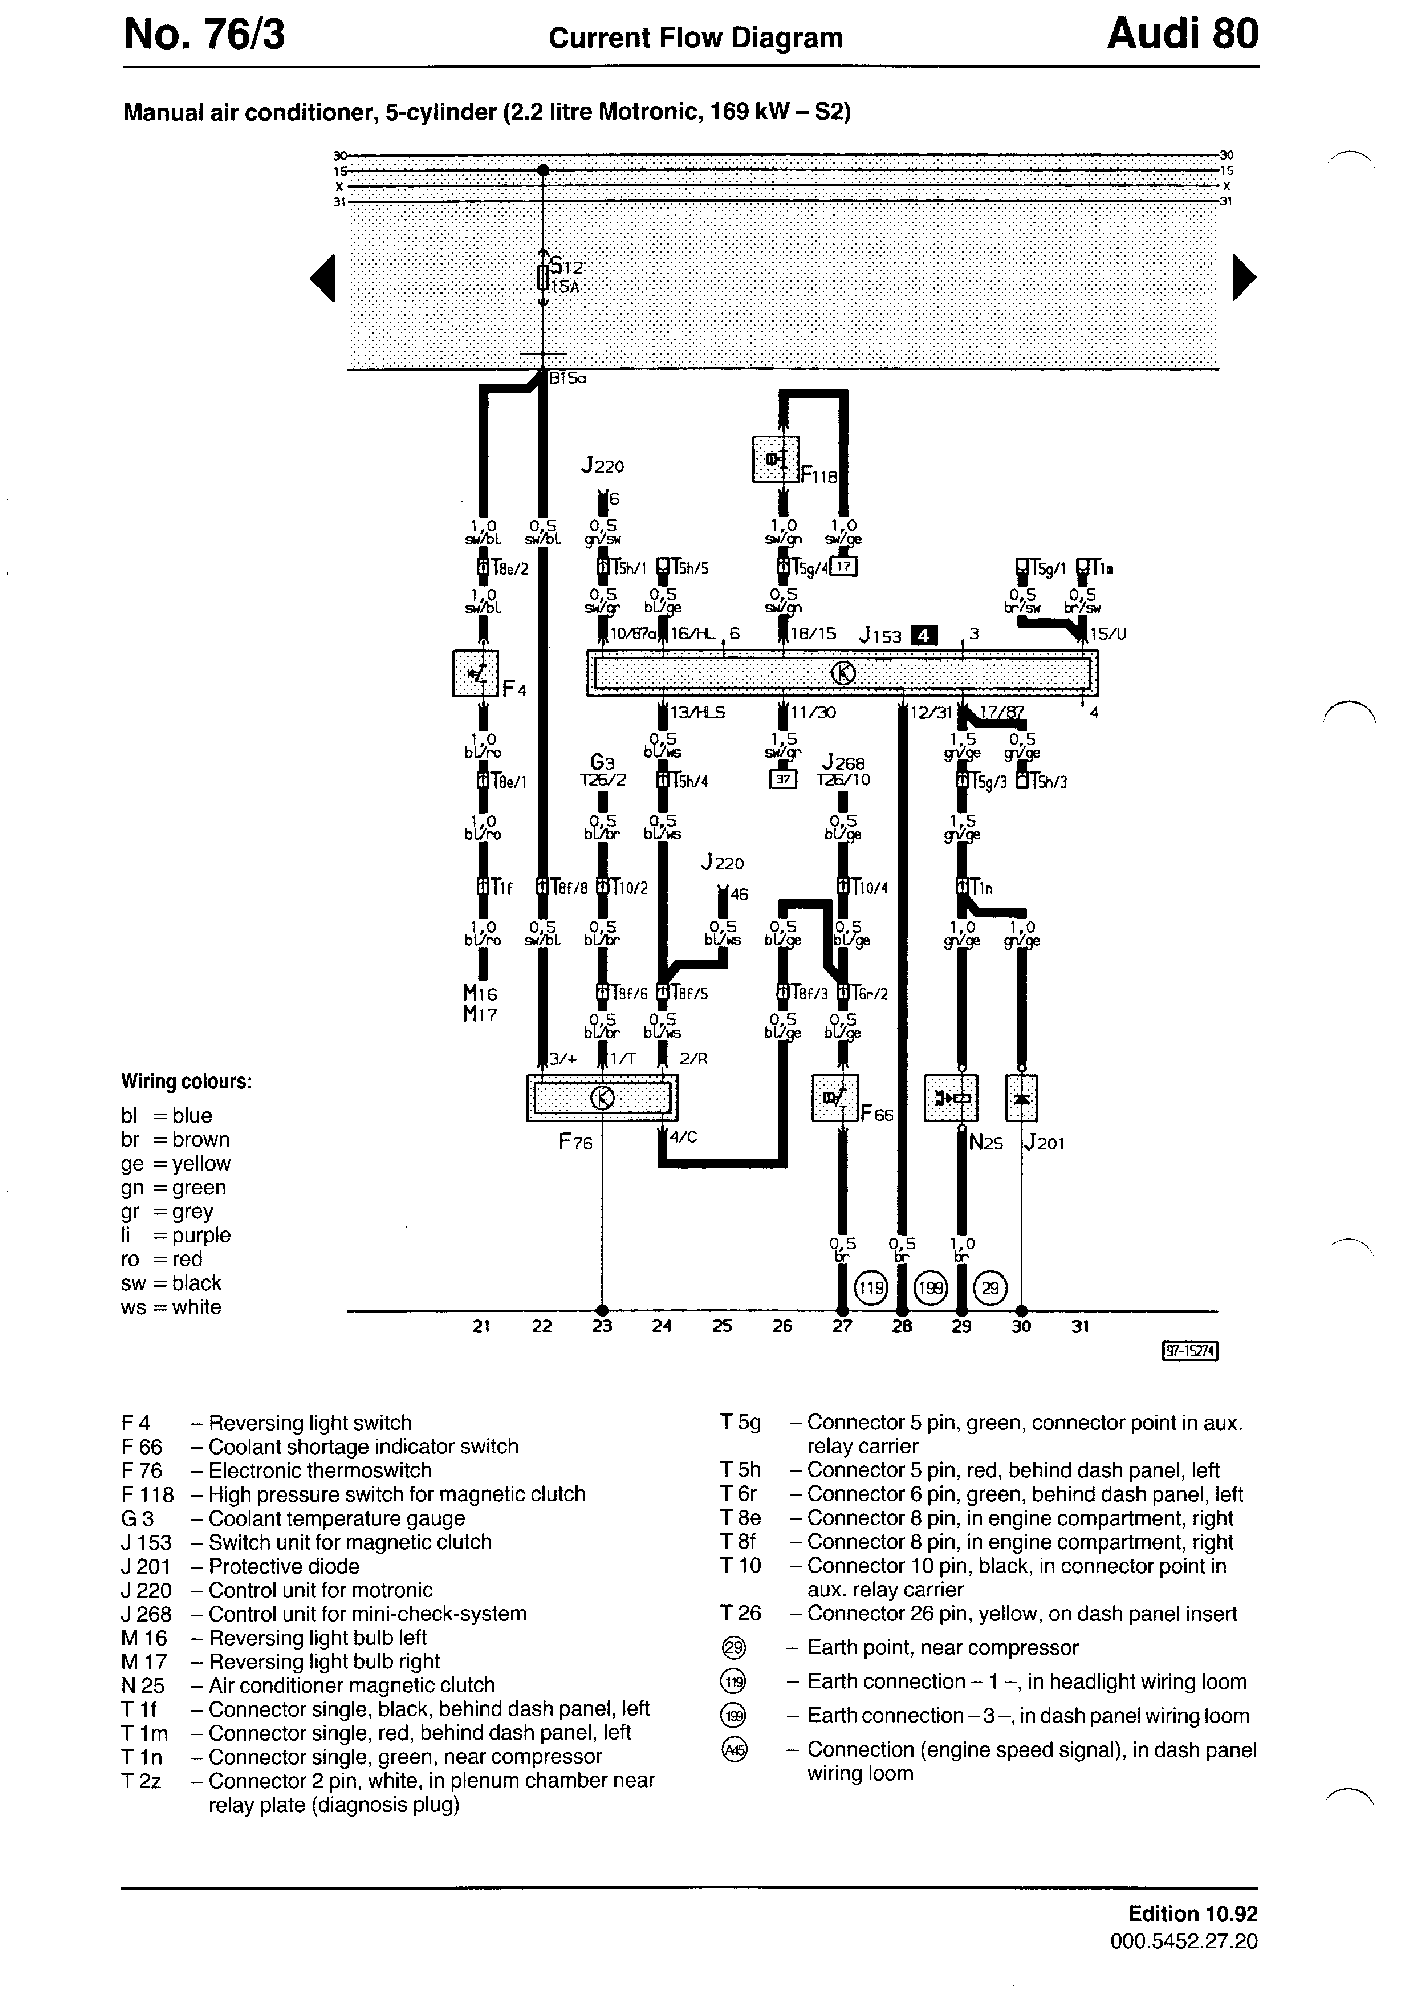 Manual Air Conditioner For Aby Engine From October C